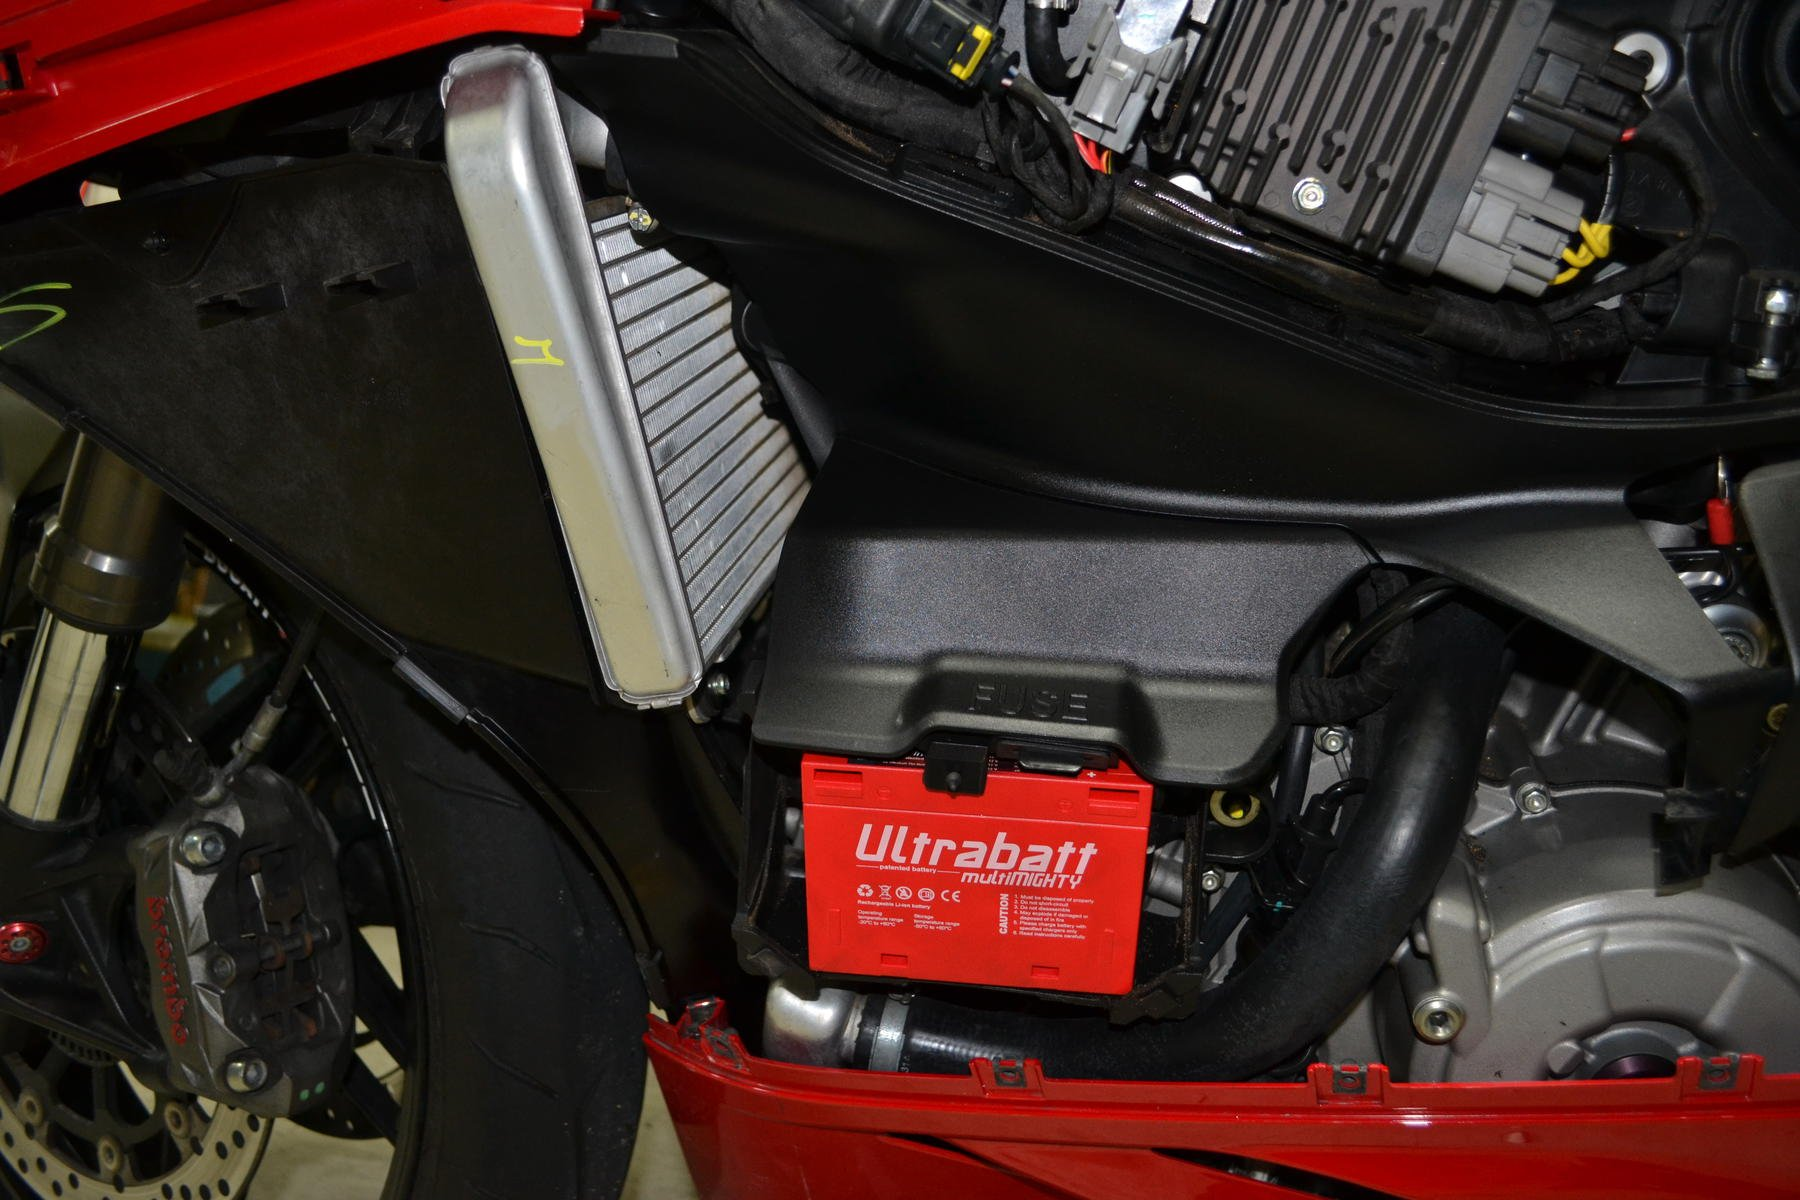 Ducati 899 Battery Motorcycle Image Idea St2 Fuse Box Location